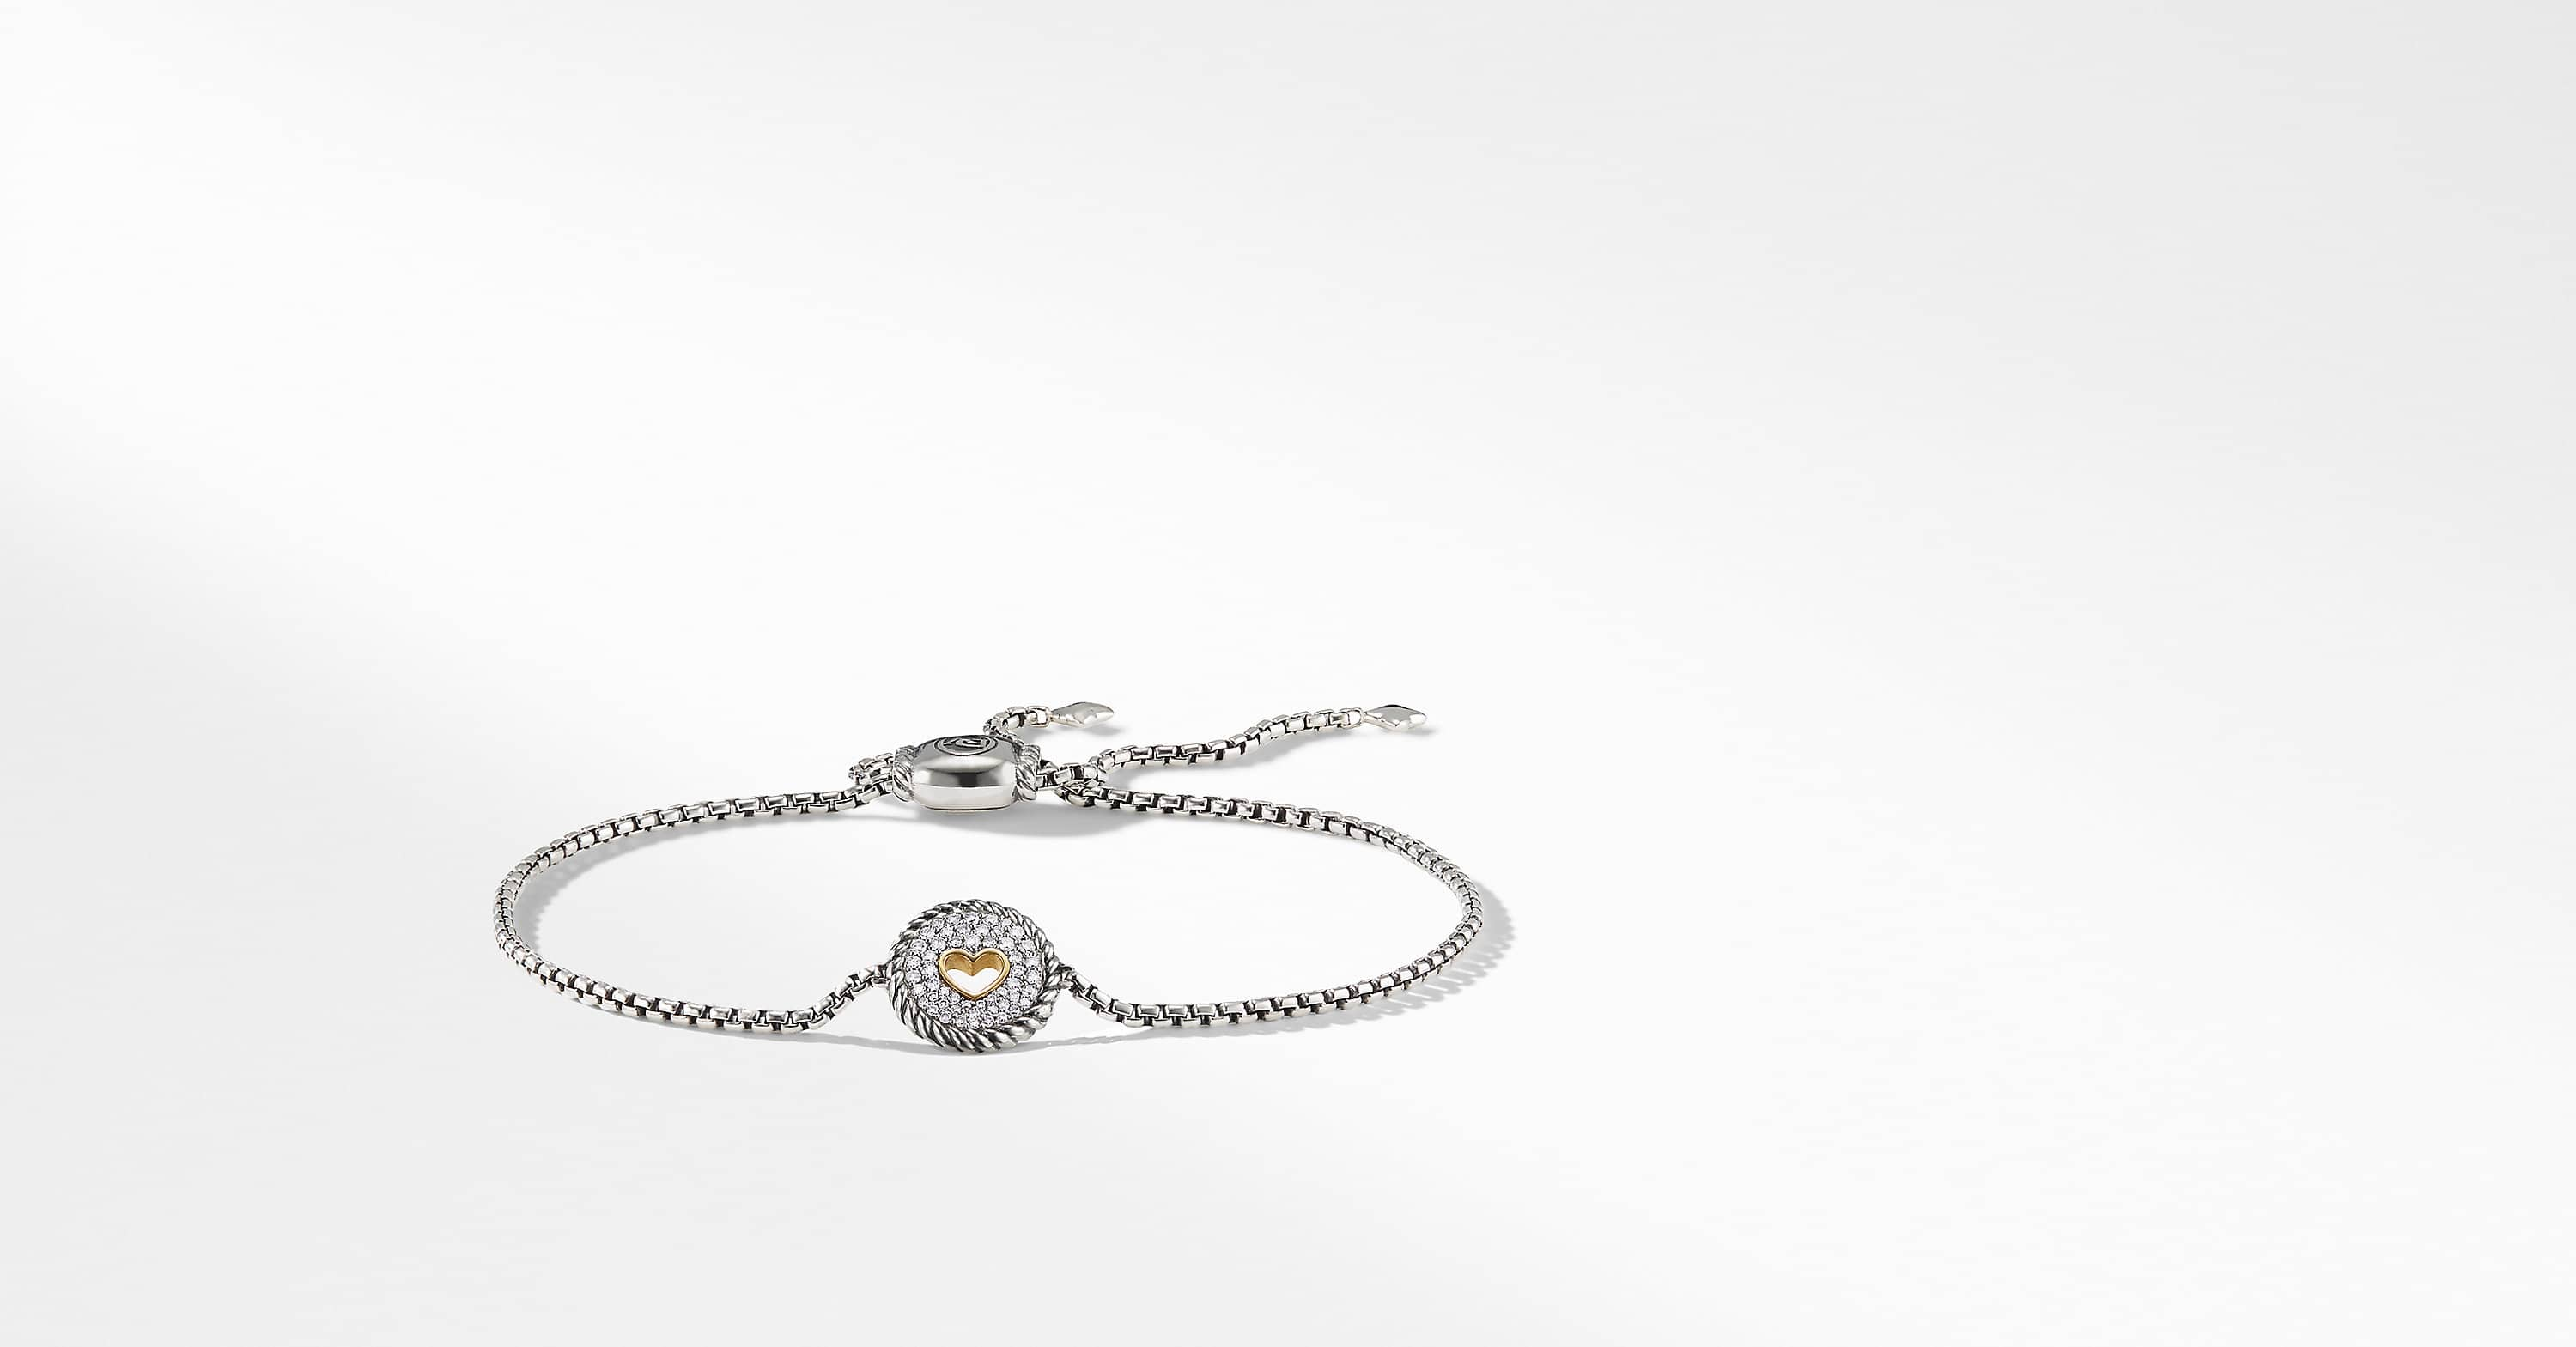 Cable Collectibles Heart Charm Bracelet with Diamonds with 18K Gold